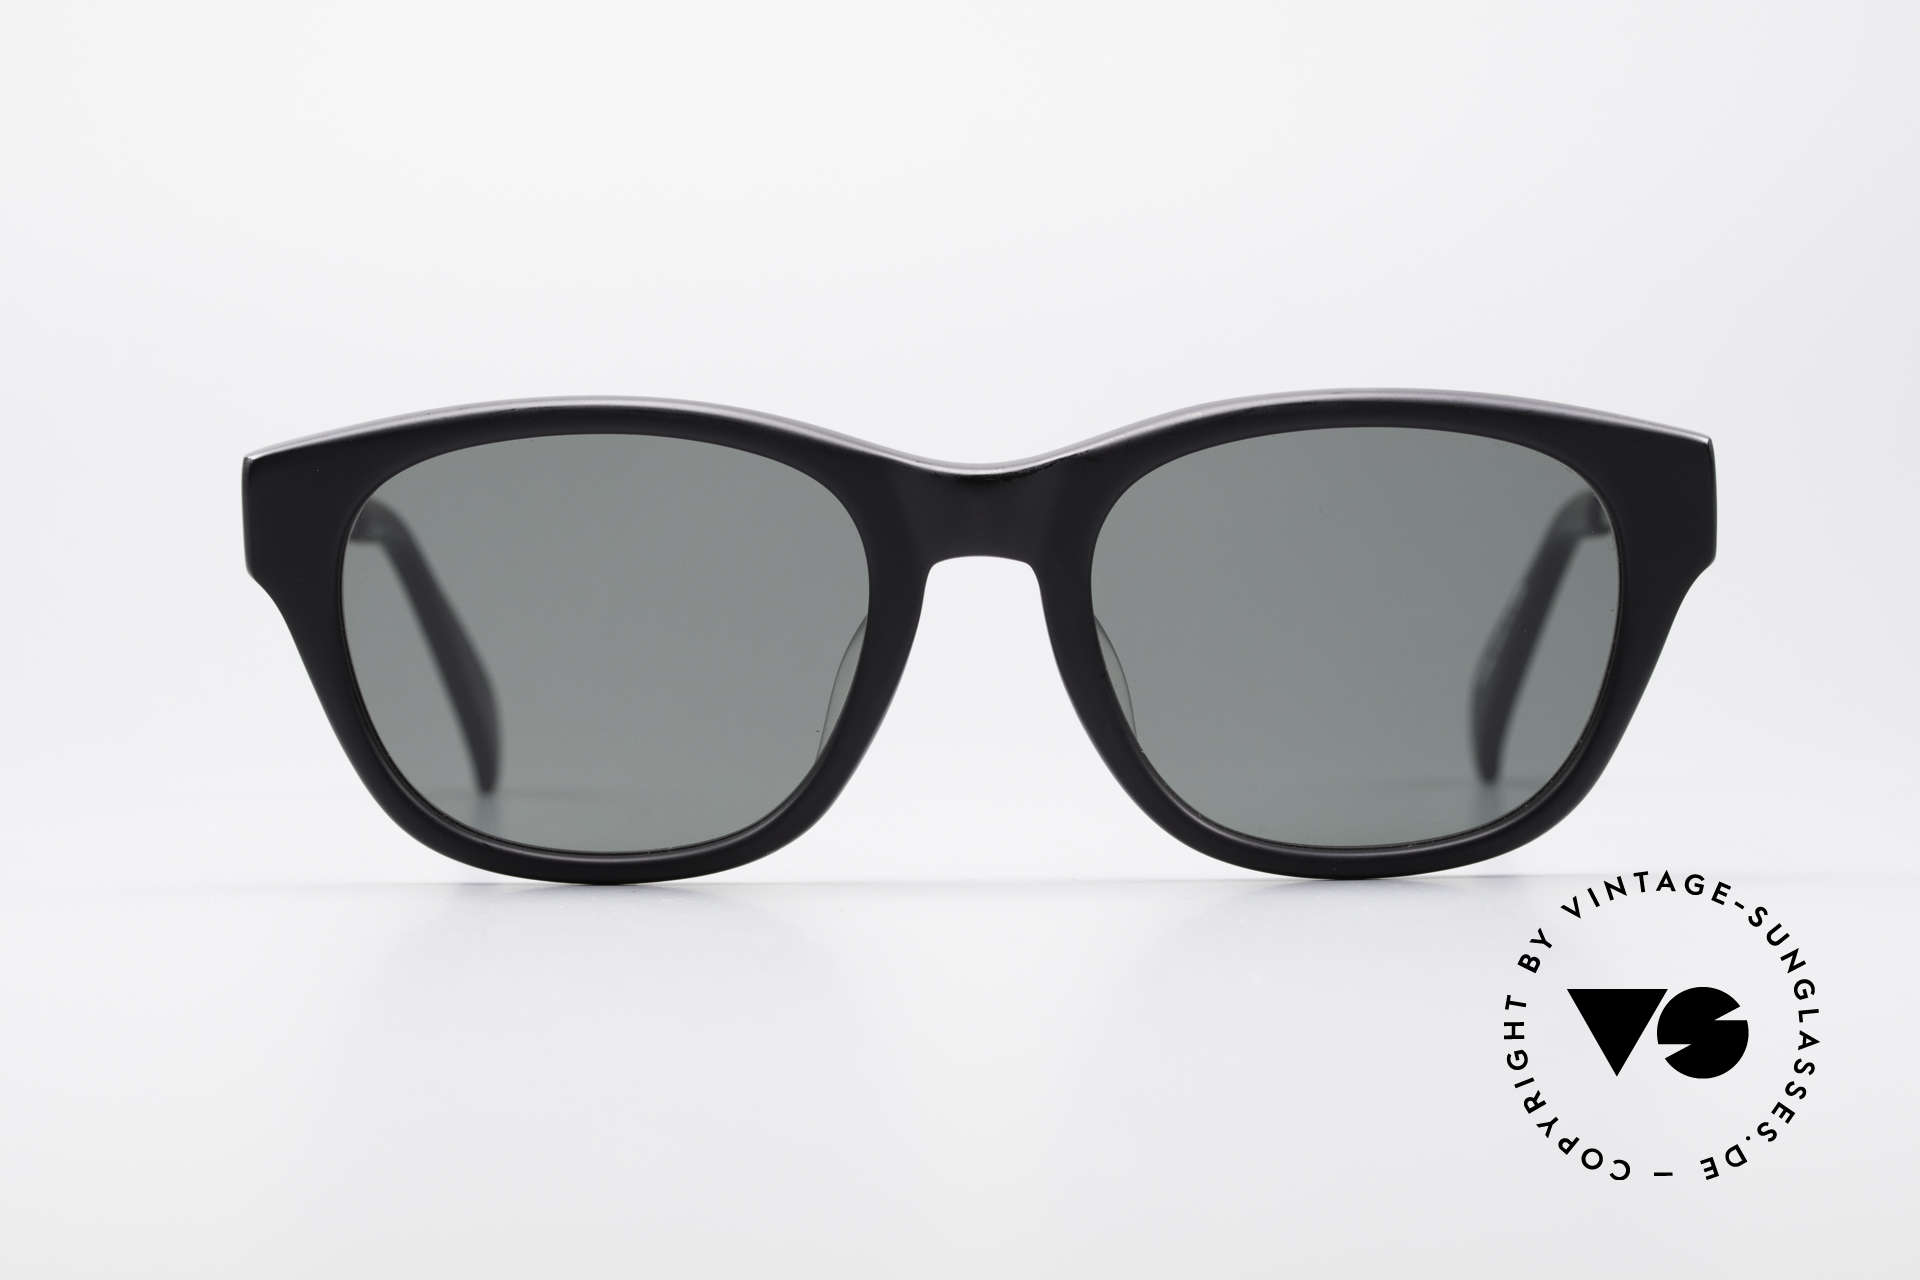 Jean Paul Gaultier 56-1071 Designer 90's Sunglasses, great combination of materials & colors; eye-catcher!, Made for Men and Women